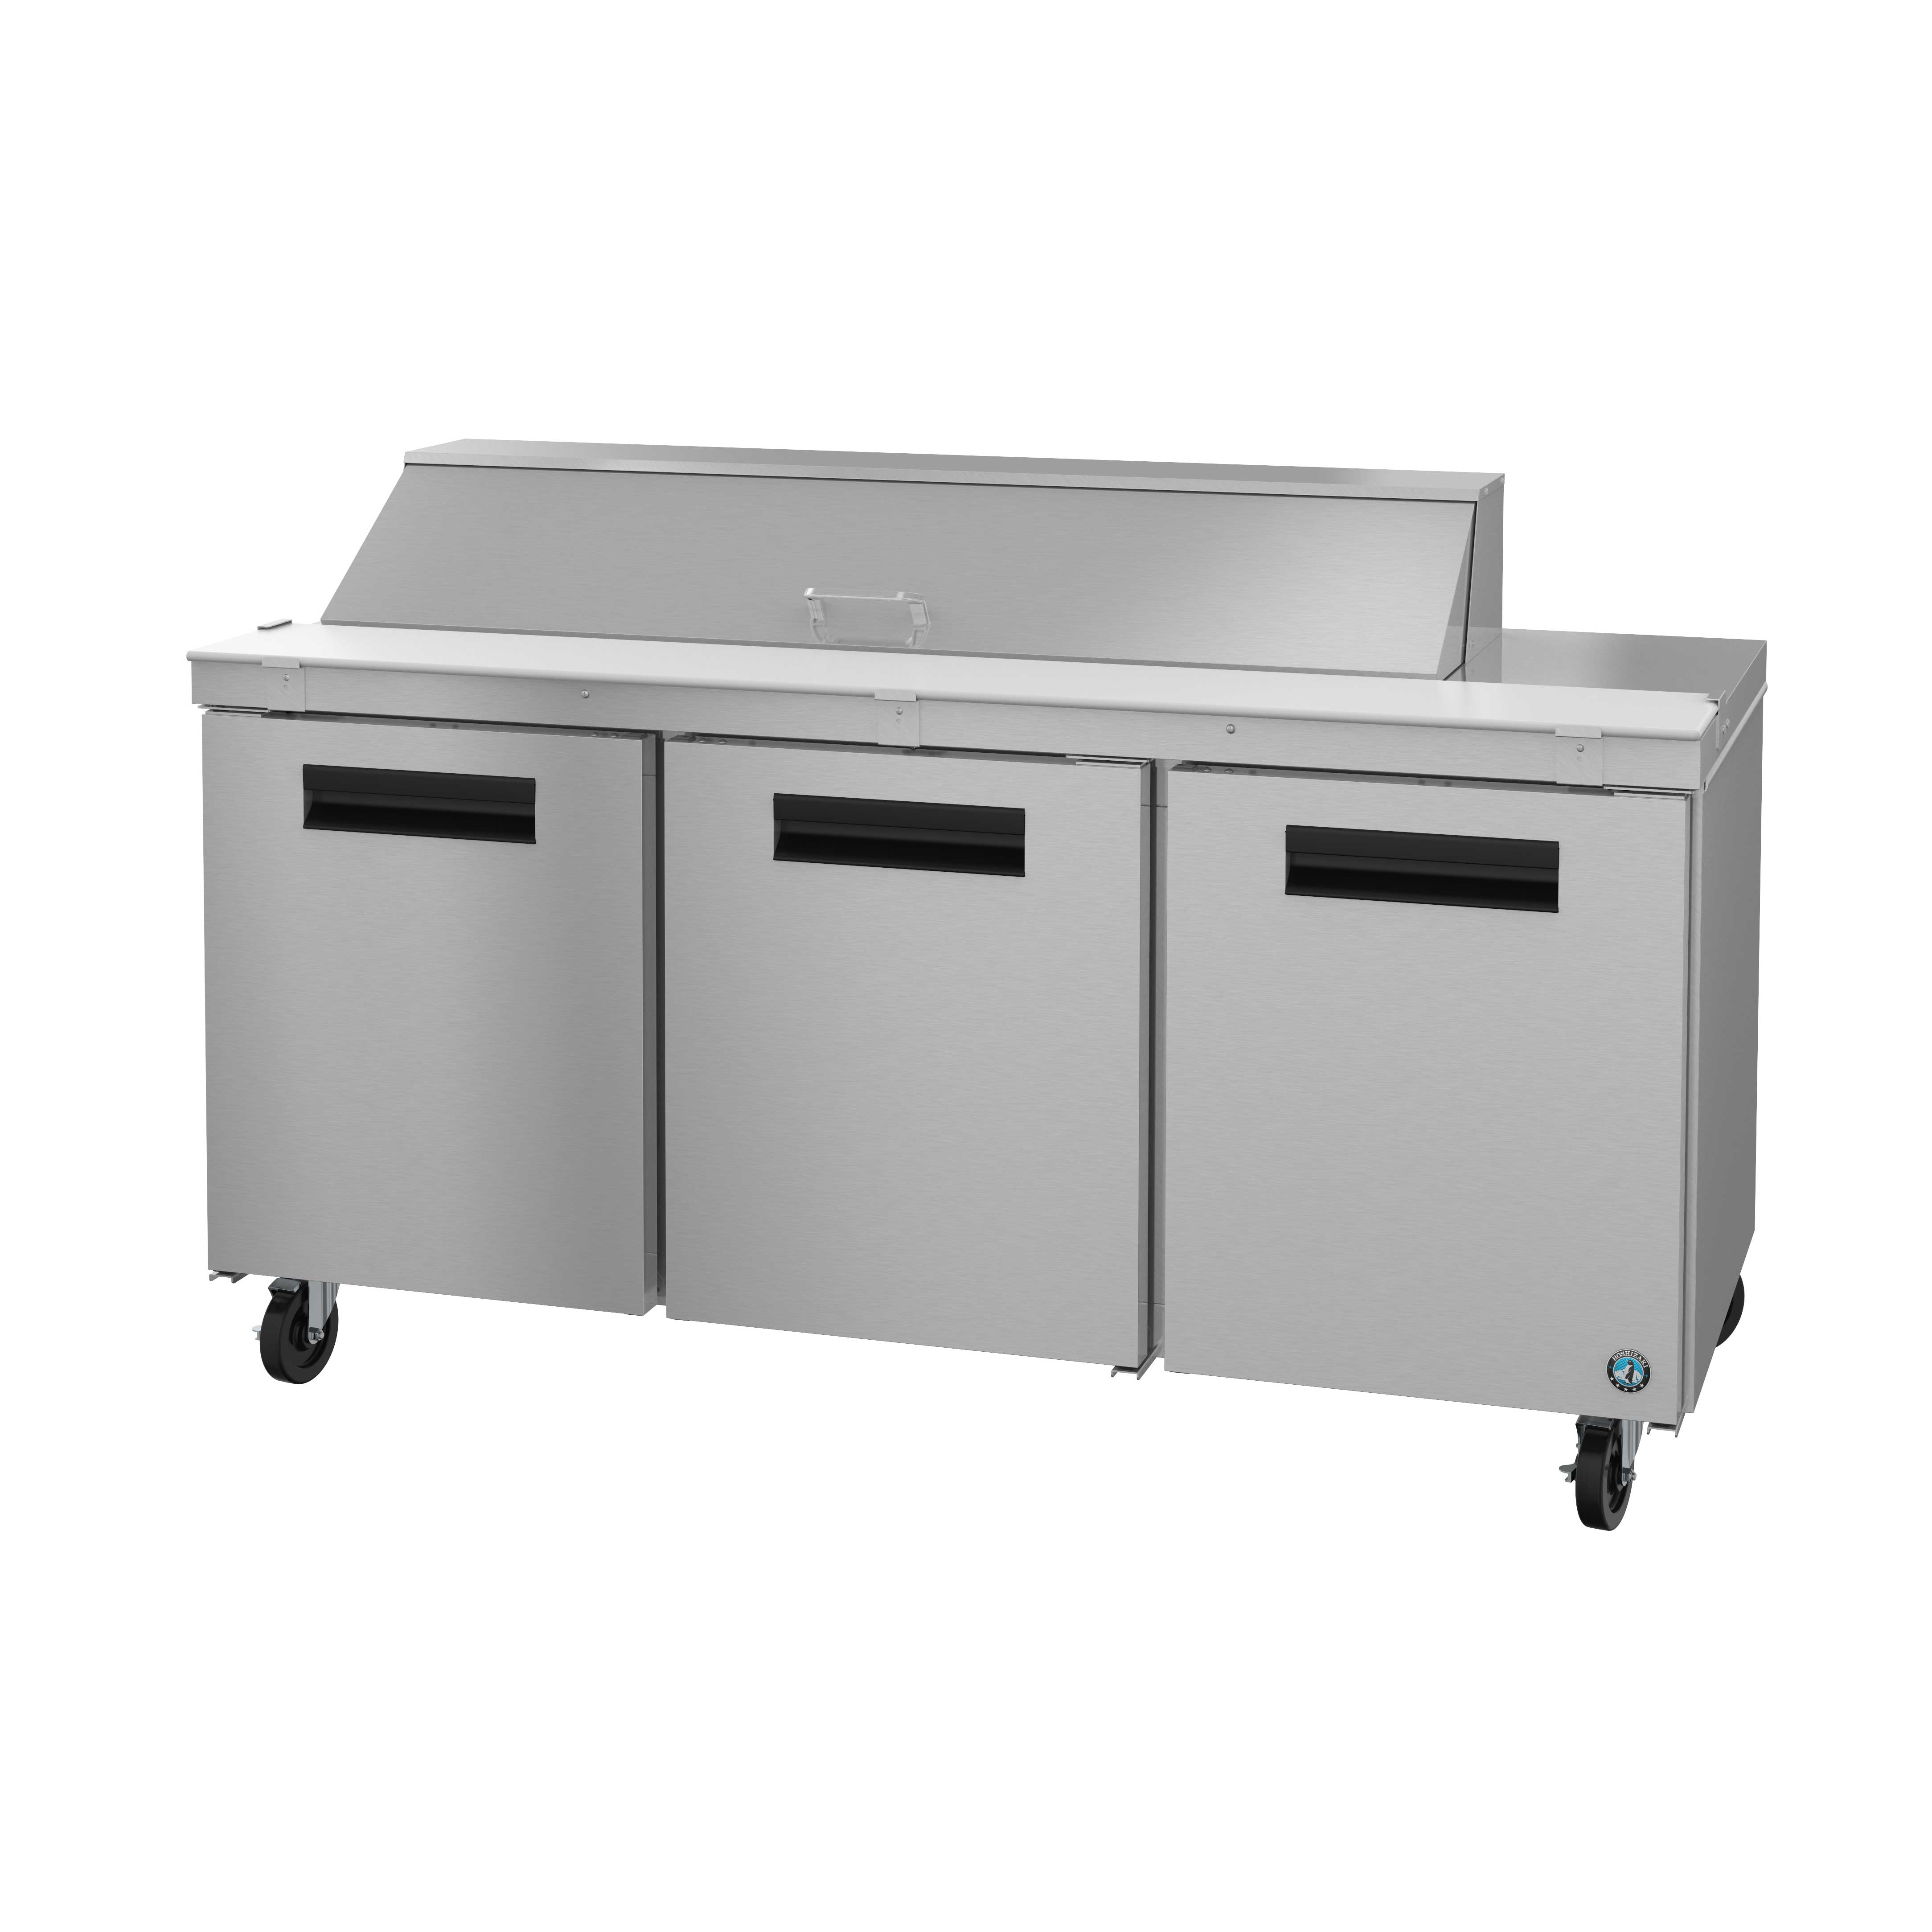 Hoshizaki SR72A-16 refrigerated counter, sandwich / salad unit